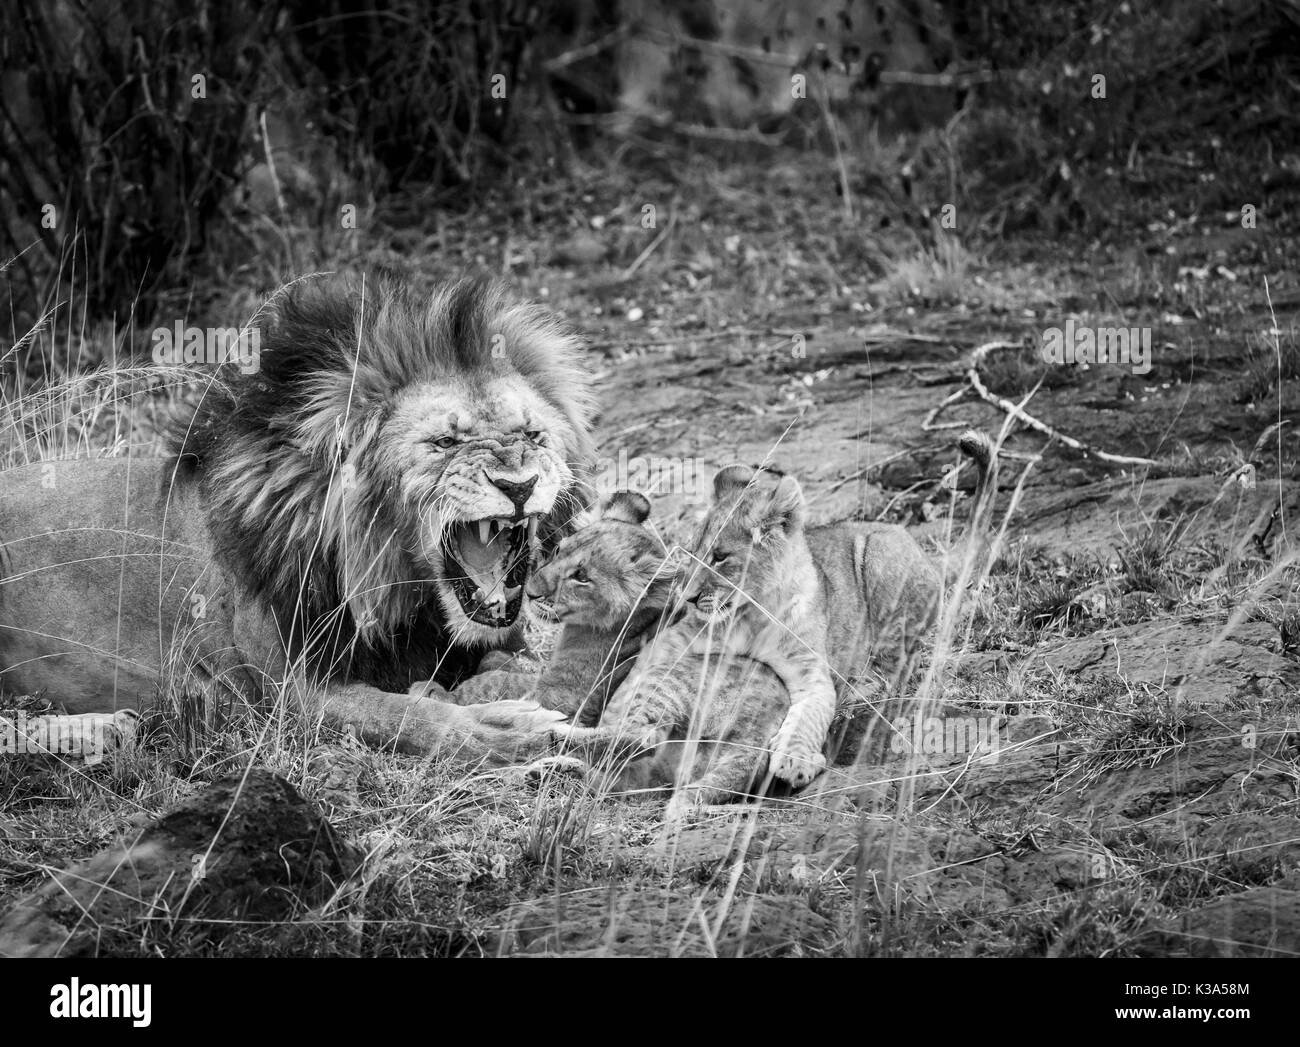 Male Mara lion (Panthera leo) playfully growls as he interacts with his family of cute young lion cubs, Masai Mara, Kenya, in monochrome - Stock Image